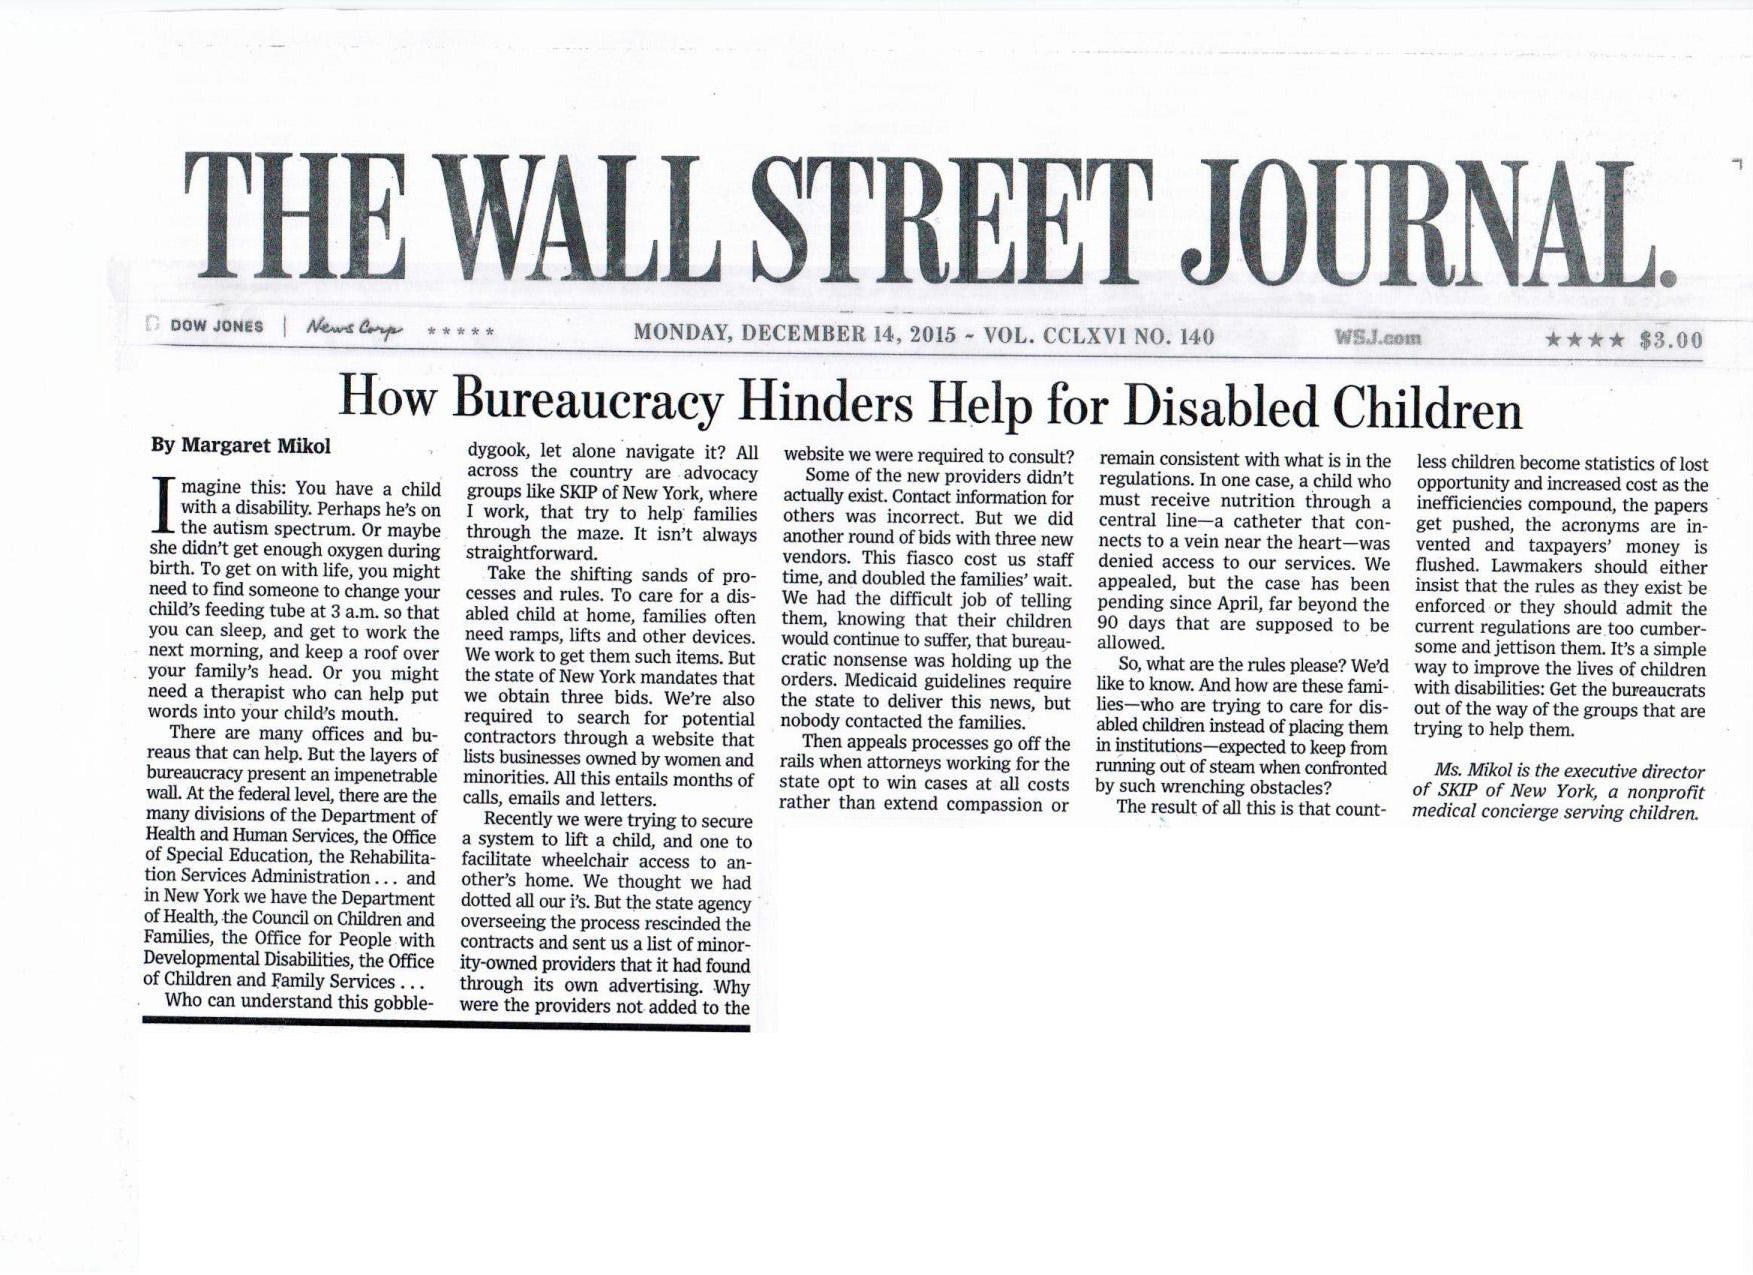 How Bureaucracy Hinders Help For Disabled Children